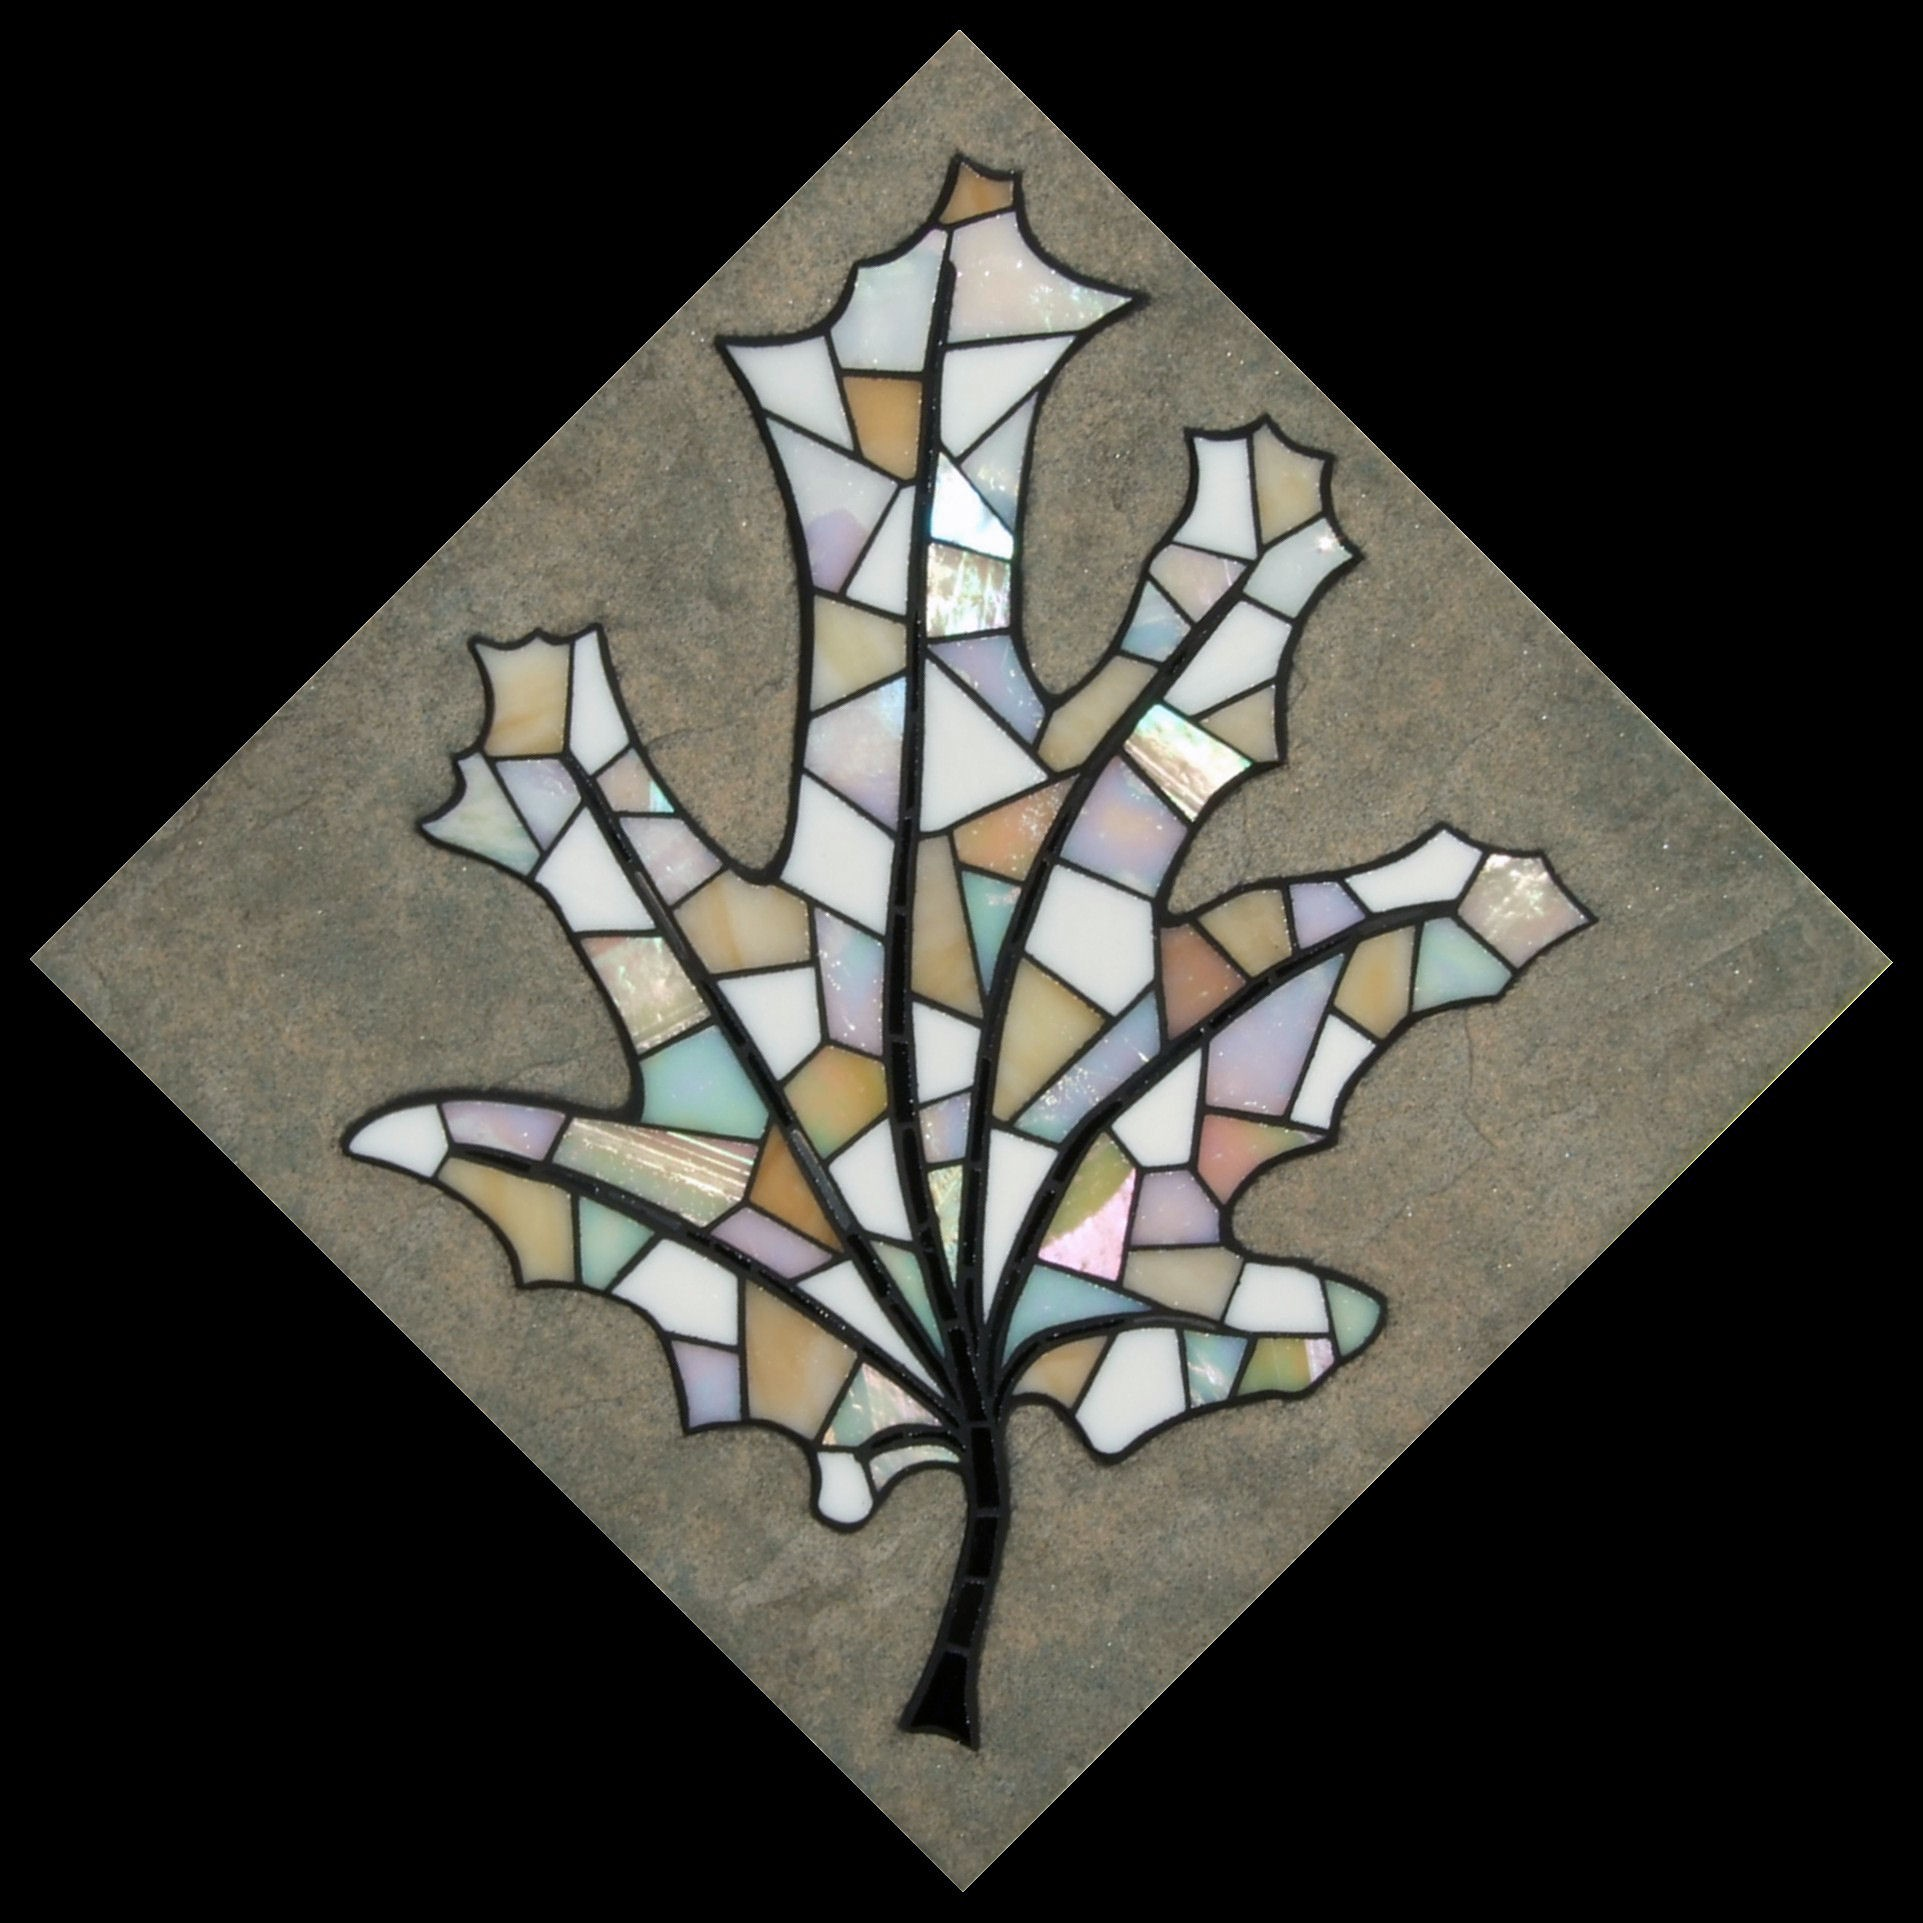 """Winter Maple"" 30cm x 30cm.  Iridescent & Stained glass on ceramic tile.  Hangs as diamond. (Fixings can be altered to hang square)."